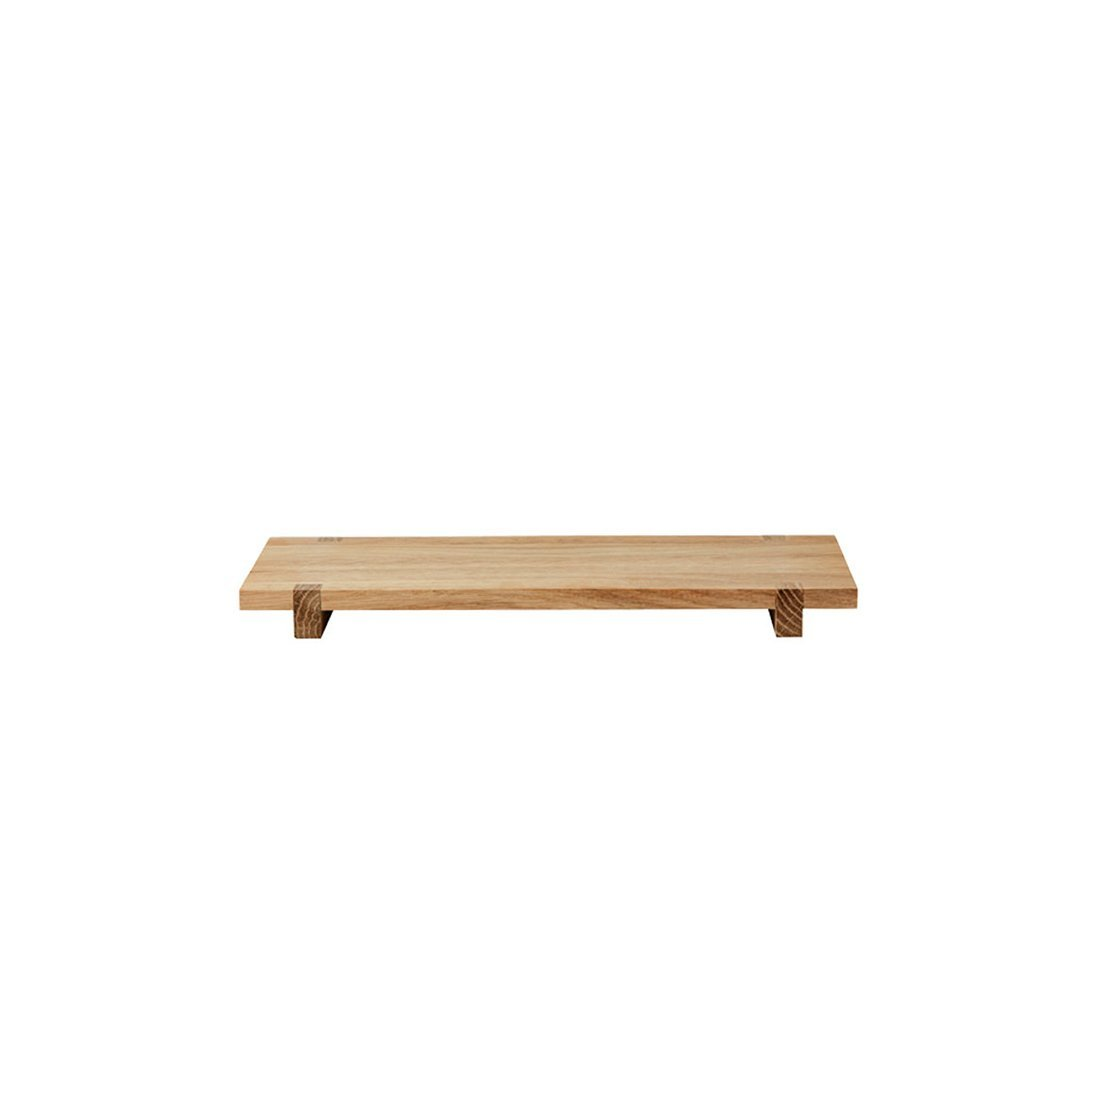 Japanese Wood Boards - S